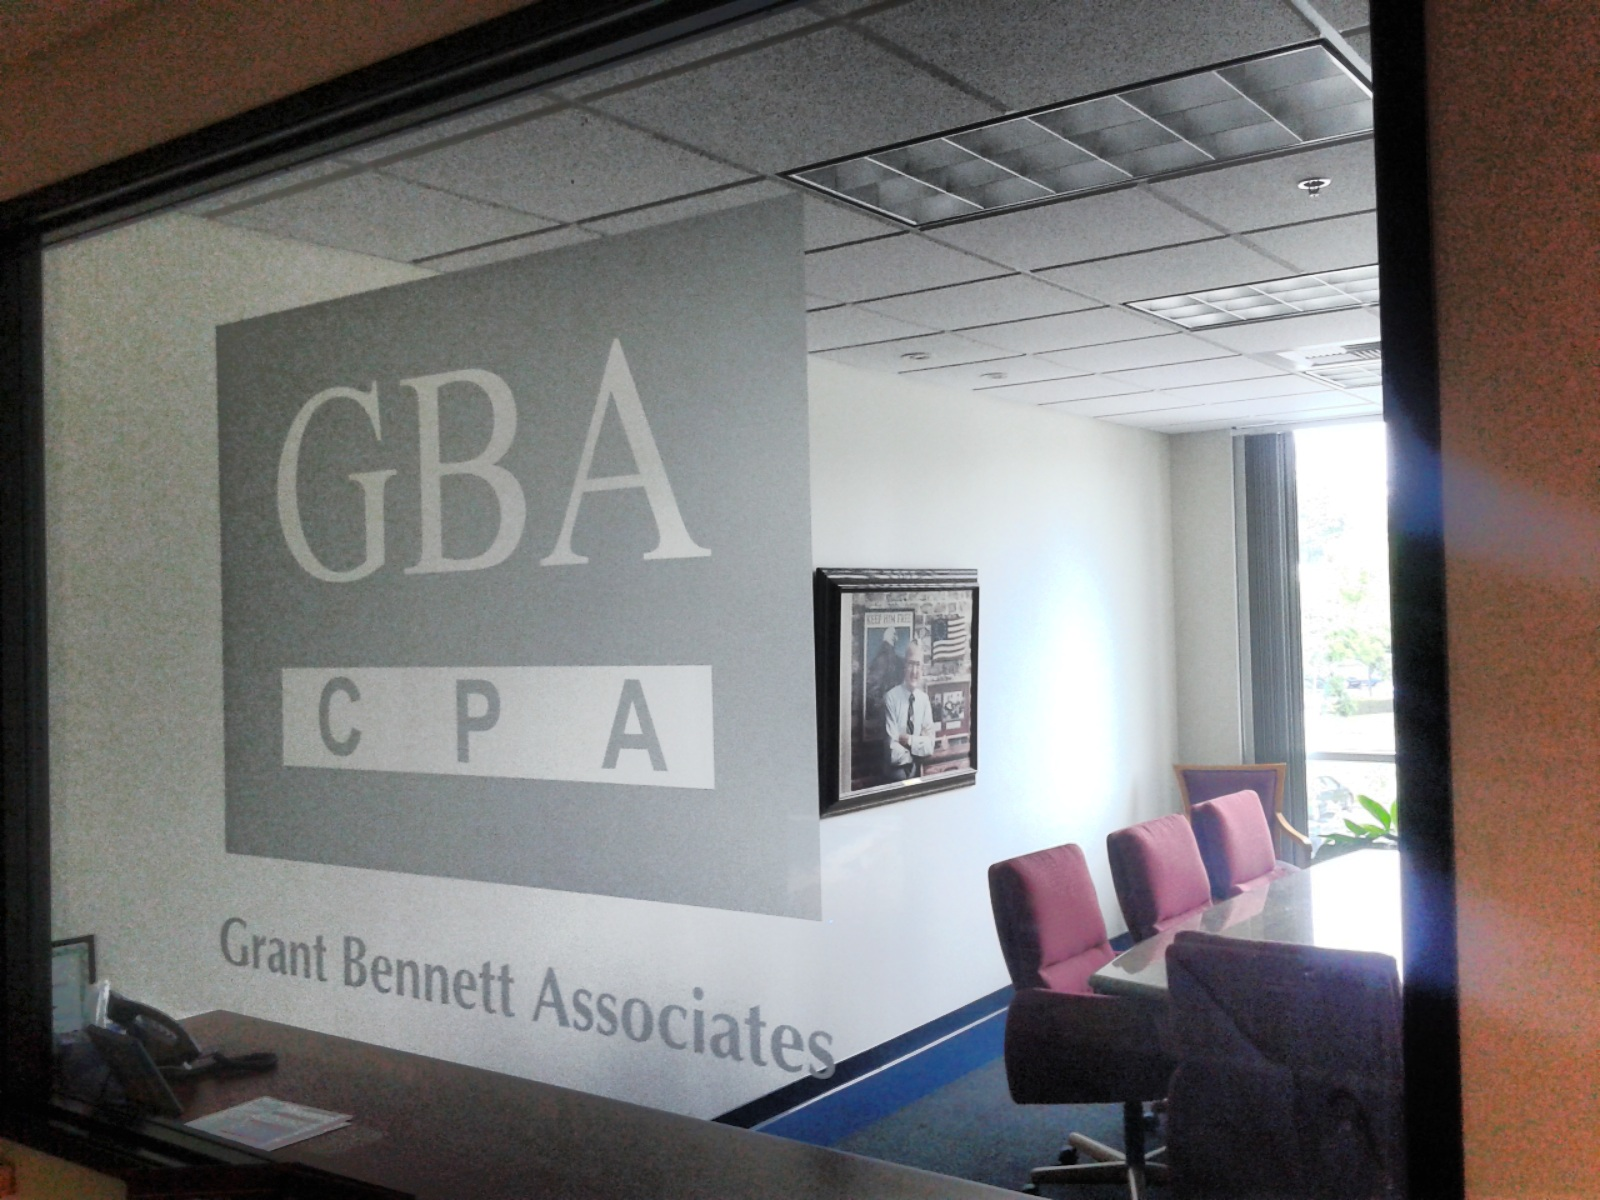 Grant bennett associates alta best practices grant bennett associates is a firm of certified public accountants offering a wide range of services in the areas of accounting auditing taxation 1betcityfo Gallery